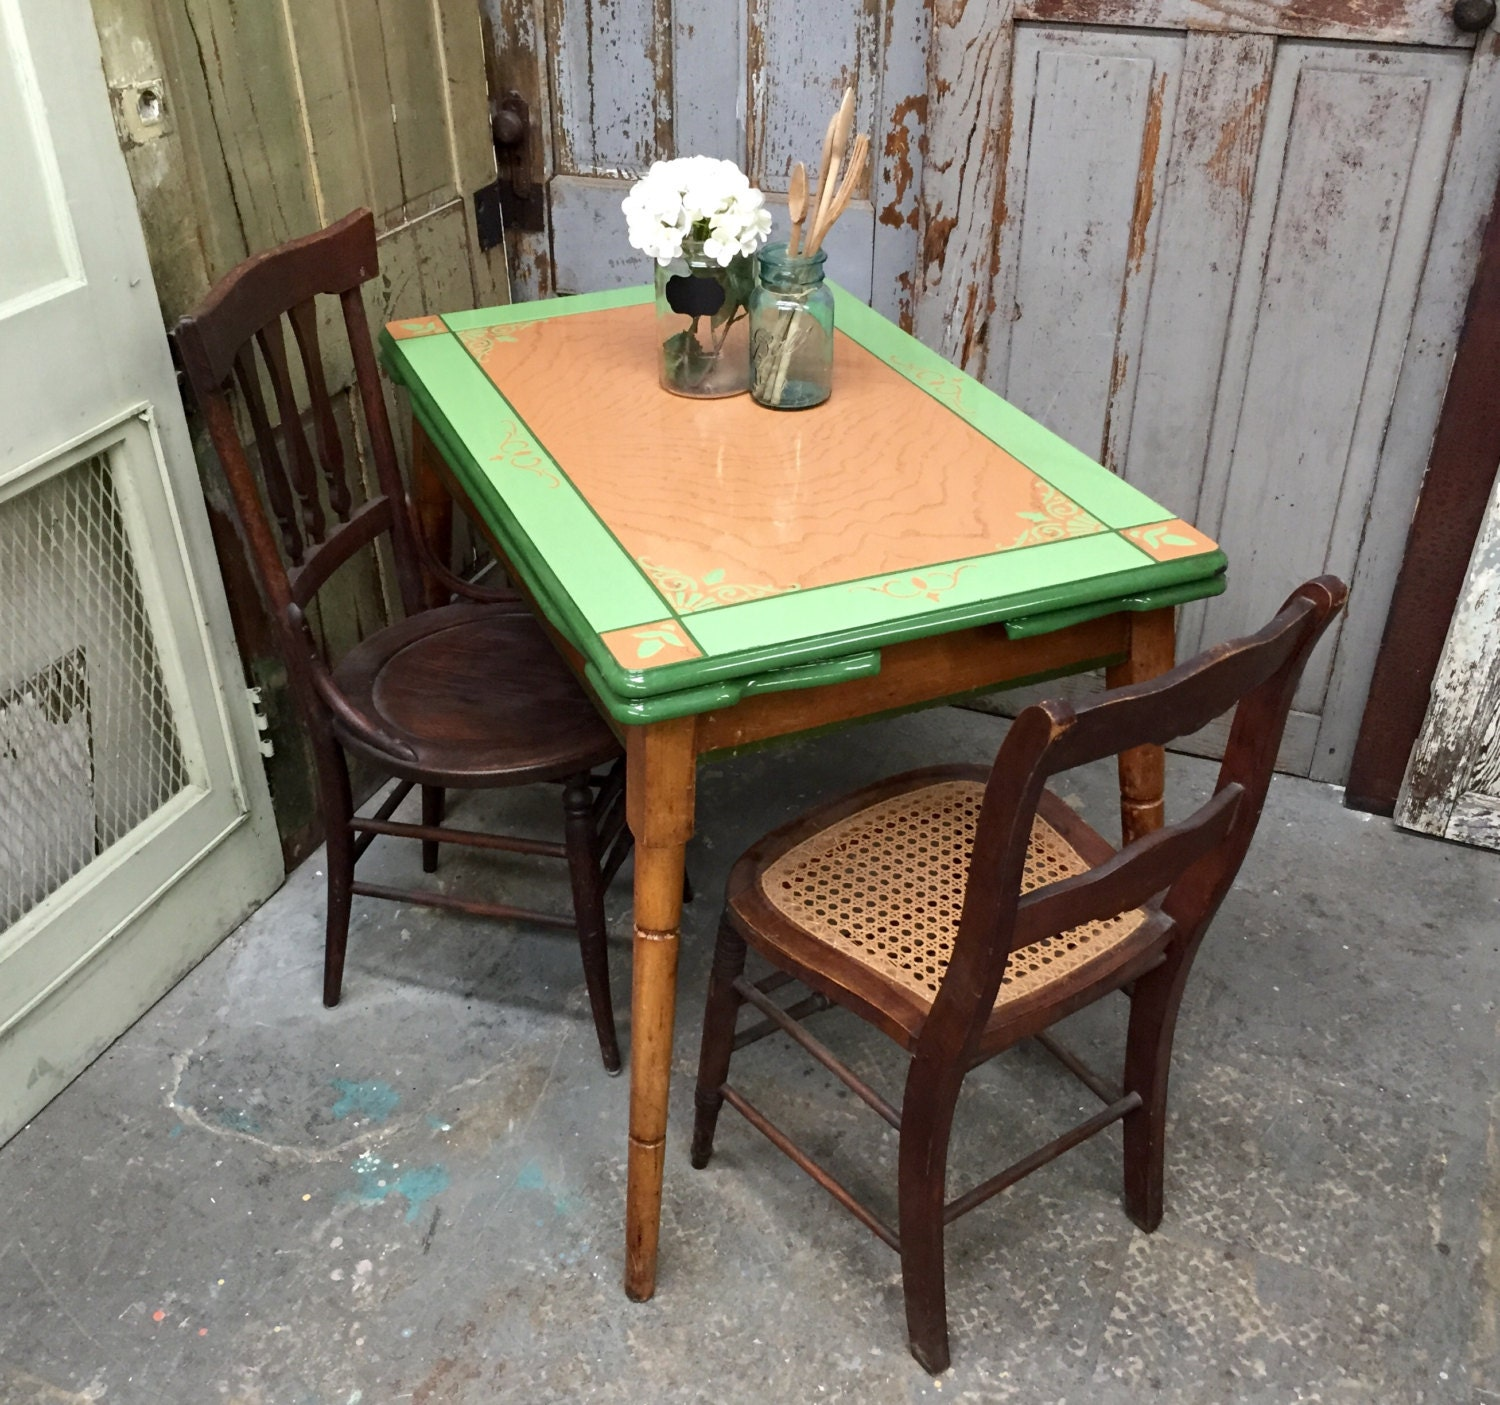 Kitchen Table Top : Enamel top table antique kitchen farm dining